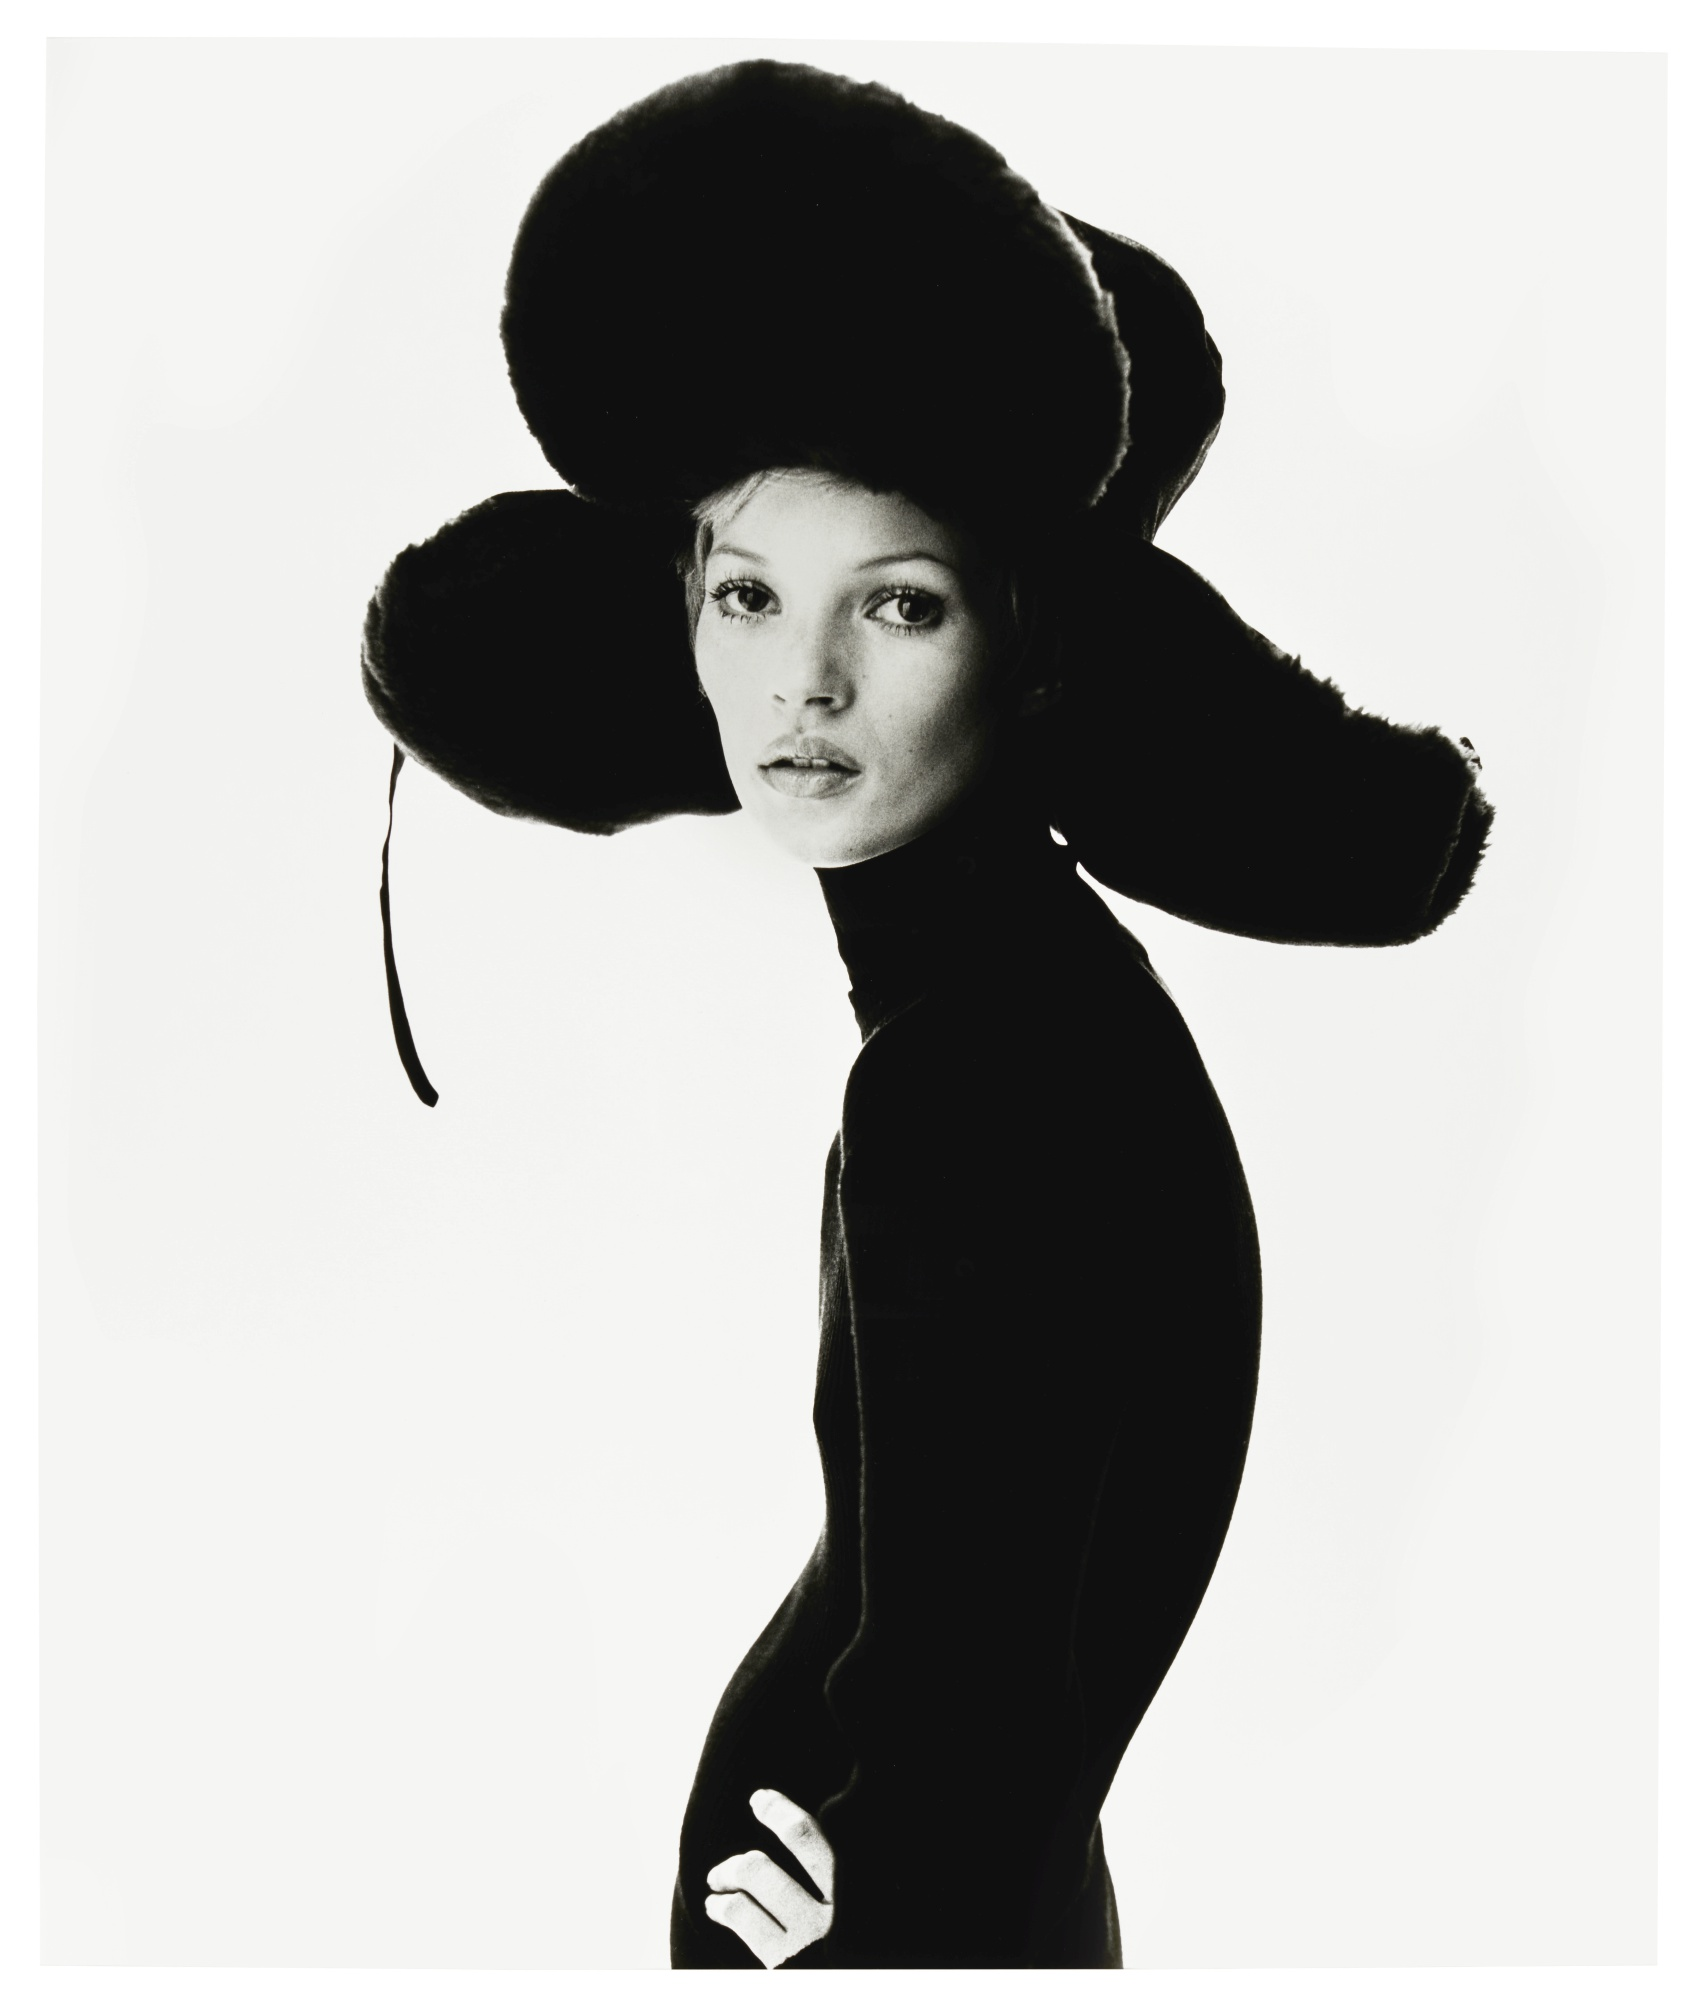 Girl with Hat (Kate Moss), Steve Klein. 1993. Photo: Sotheby's